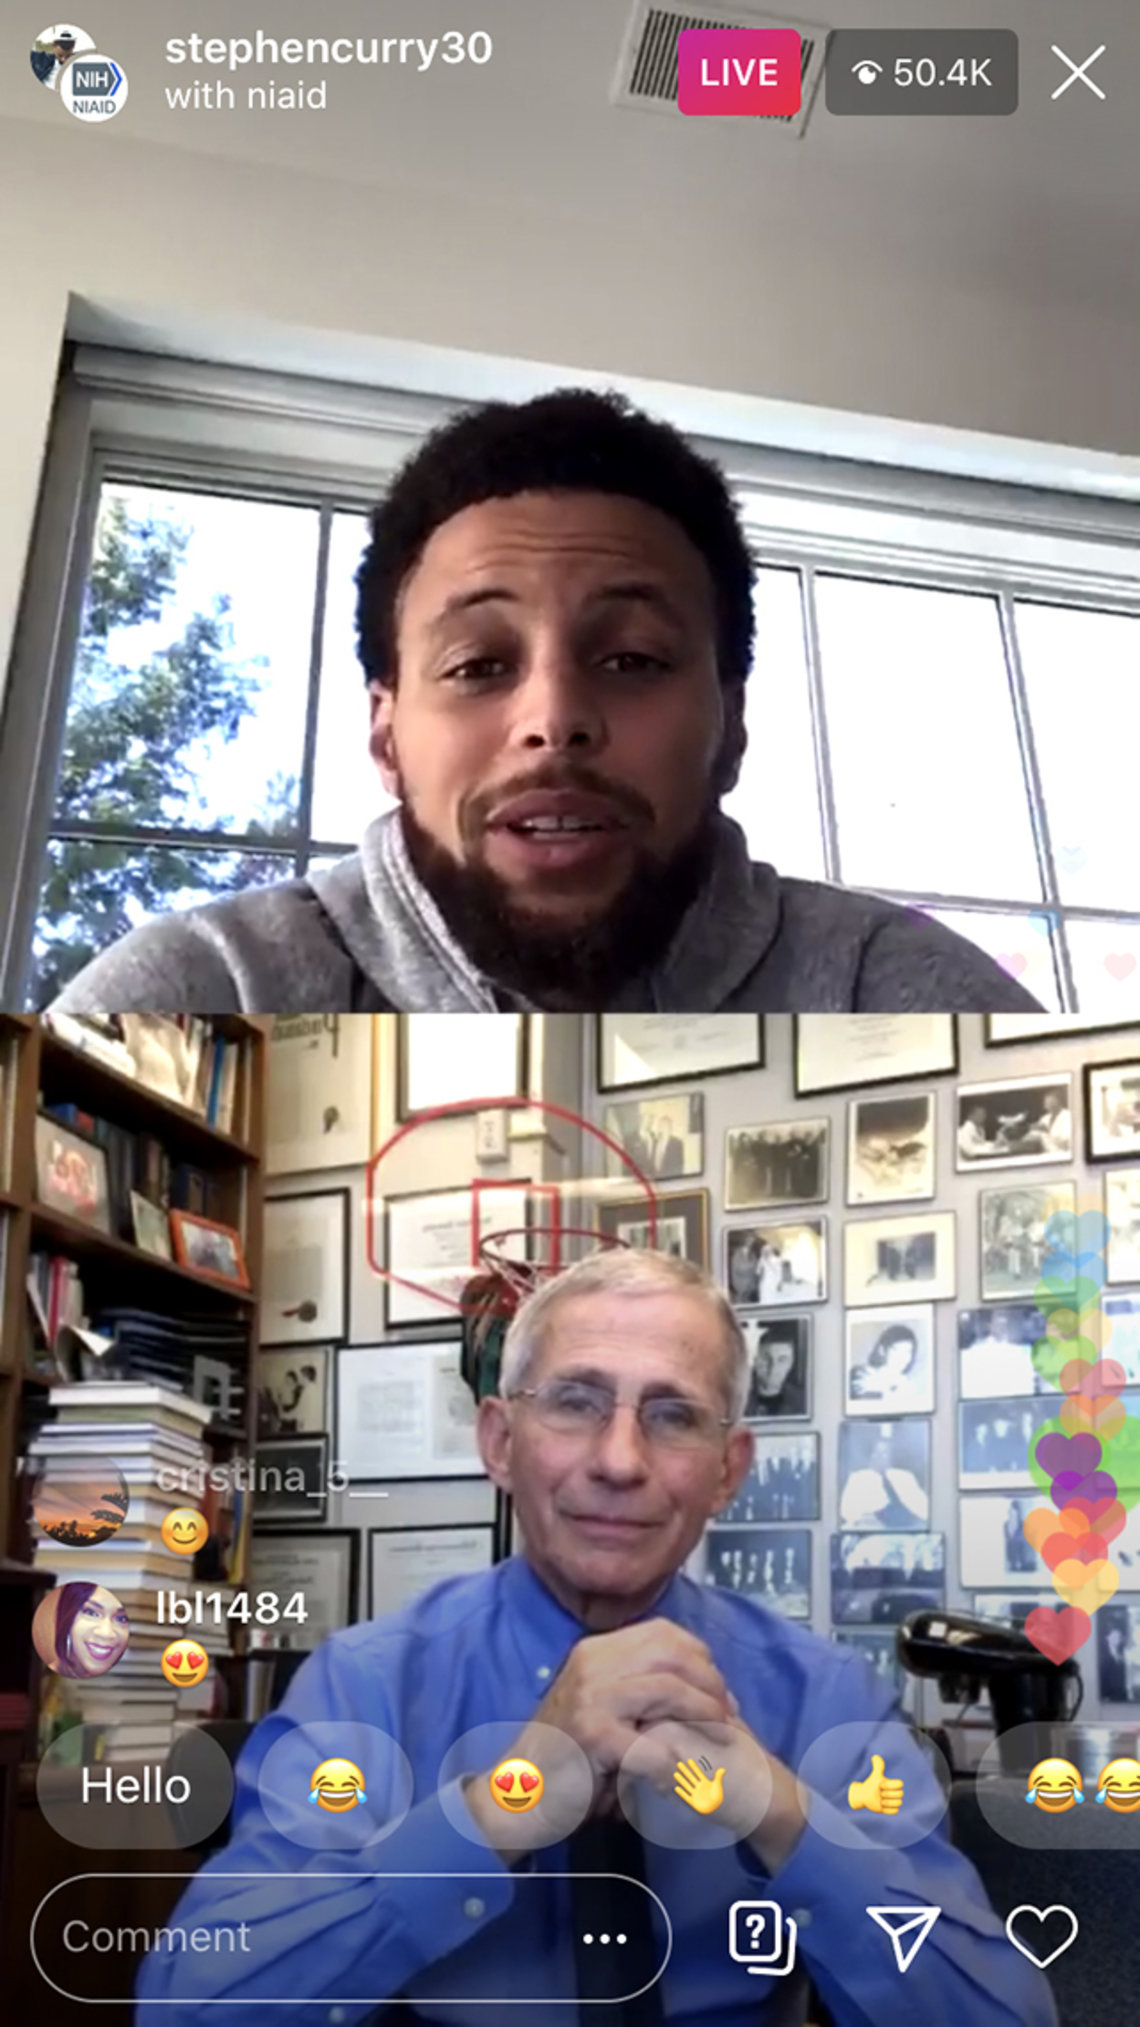 Instagram screen showing Steph Curry and Dr. Anthony Fauci